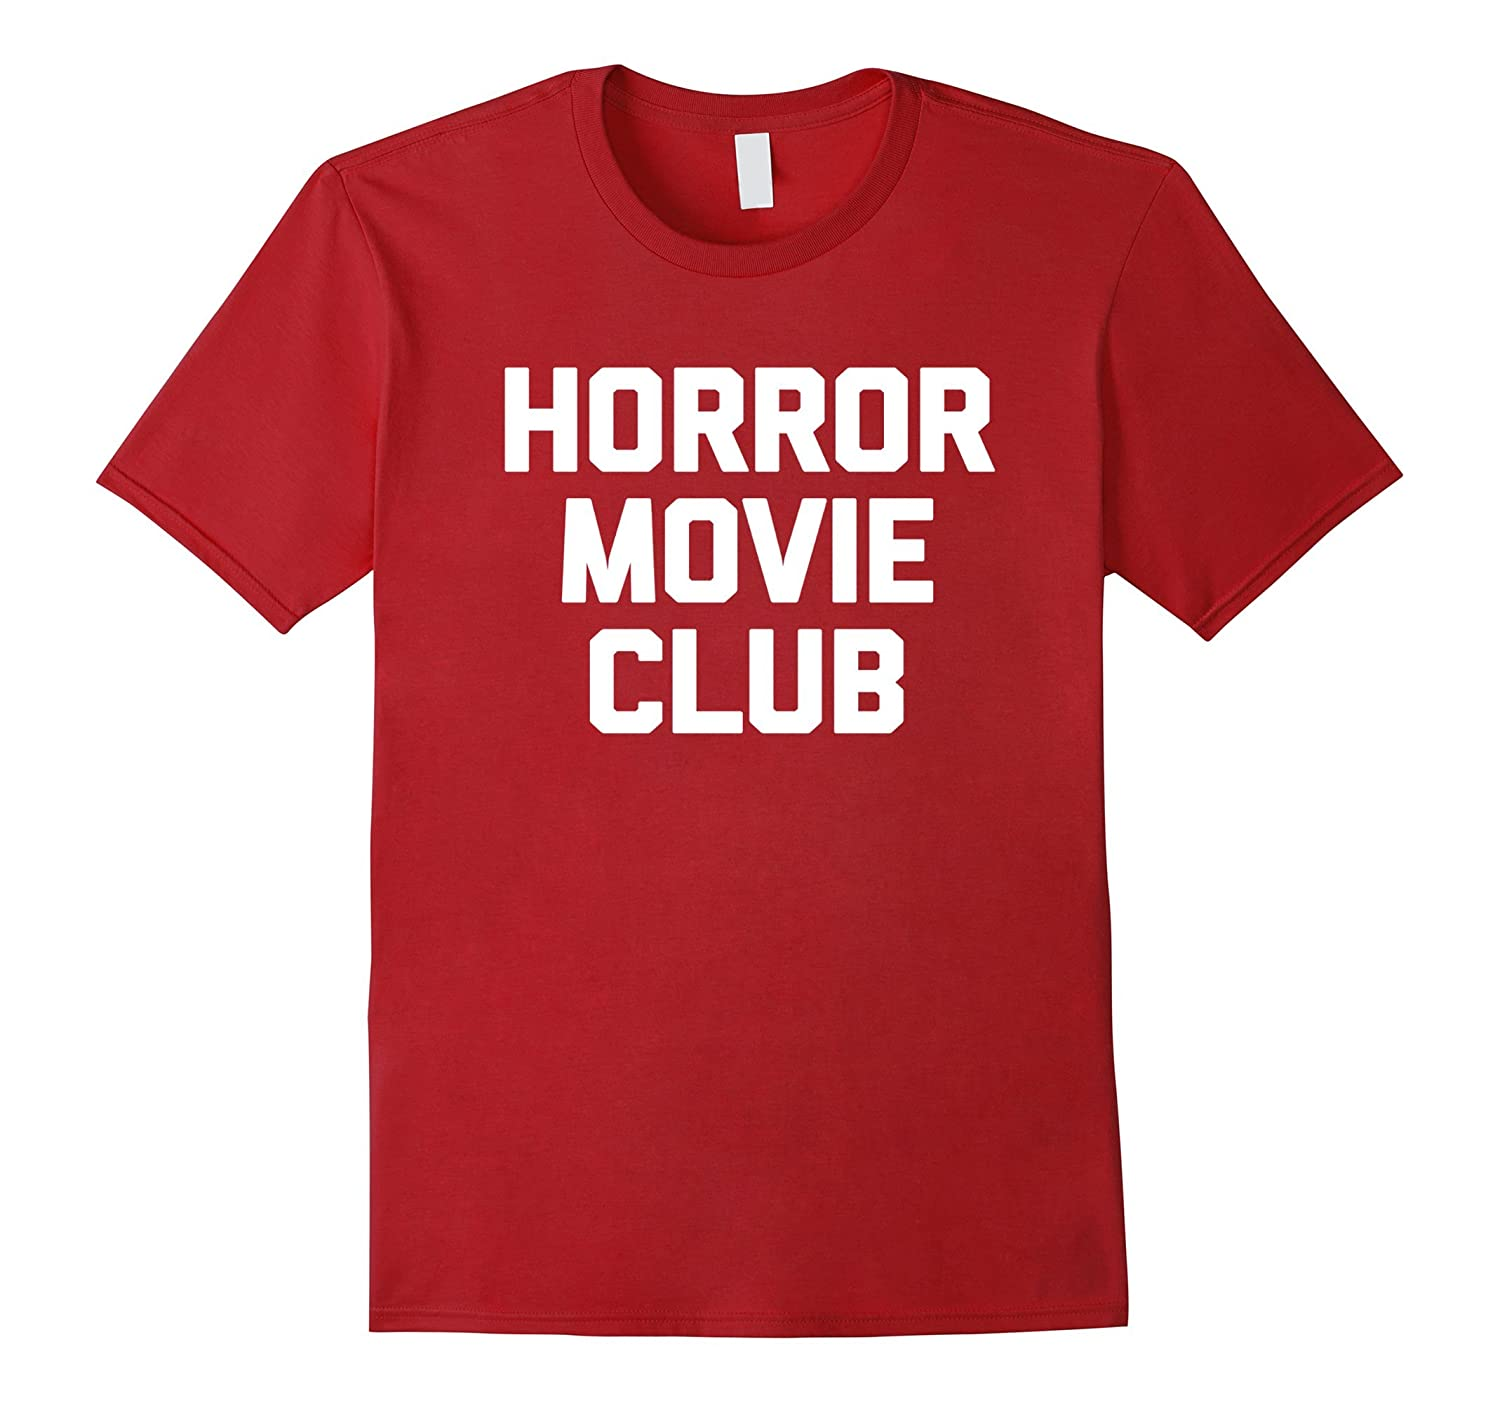 Horror Movie Club T-Shirt funny saying sarcastic novelty tee-TJ